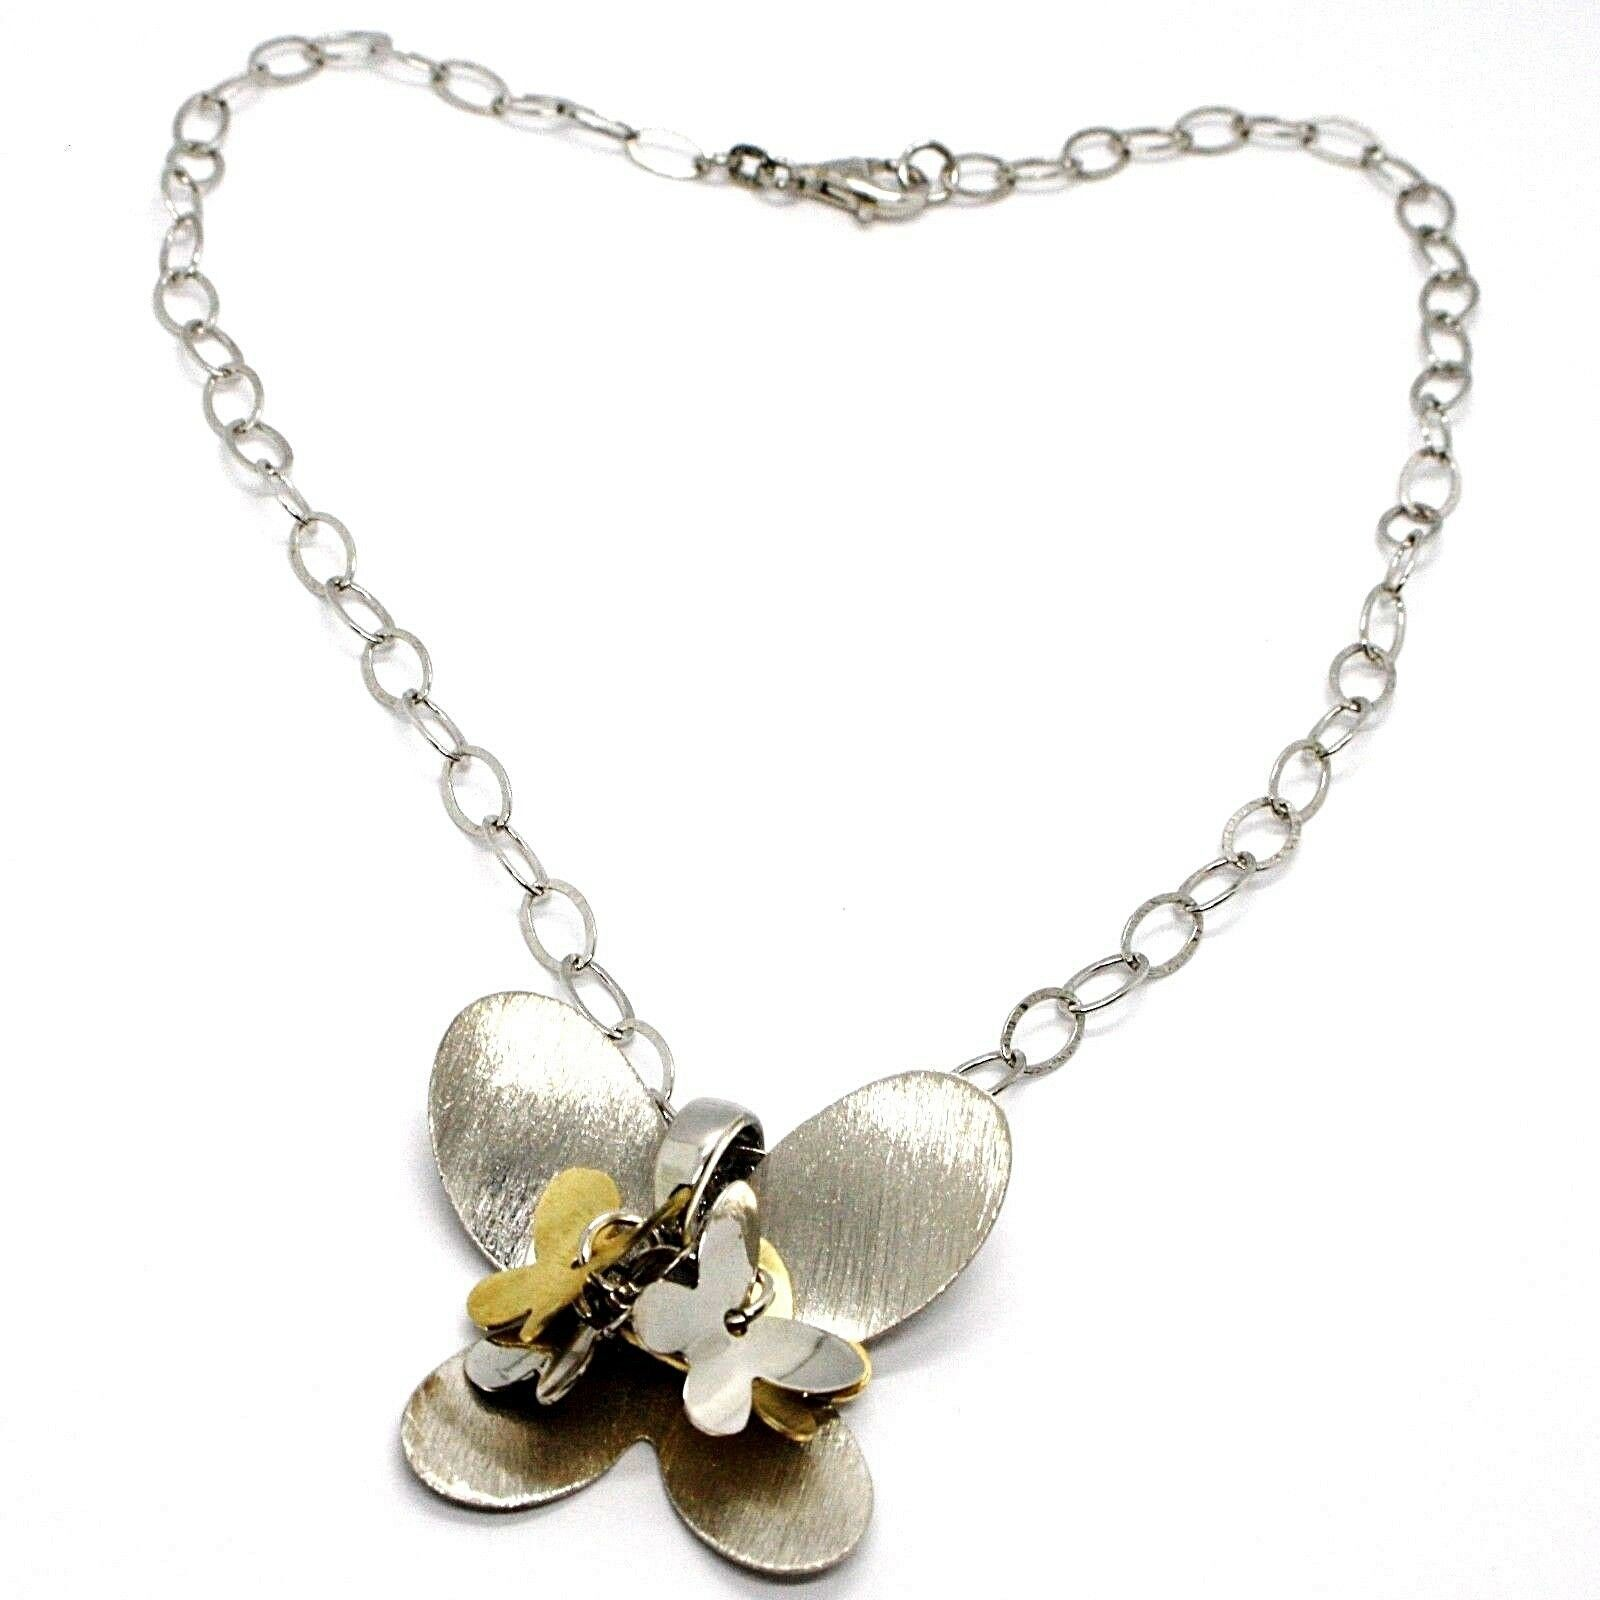 Necklace Silver 925, Chain Oval, Pendant Butterfly Big, Group Butterflies